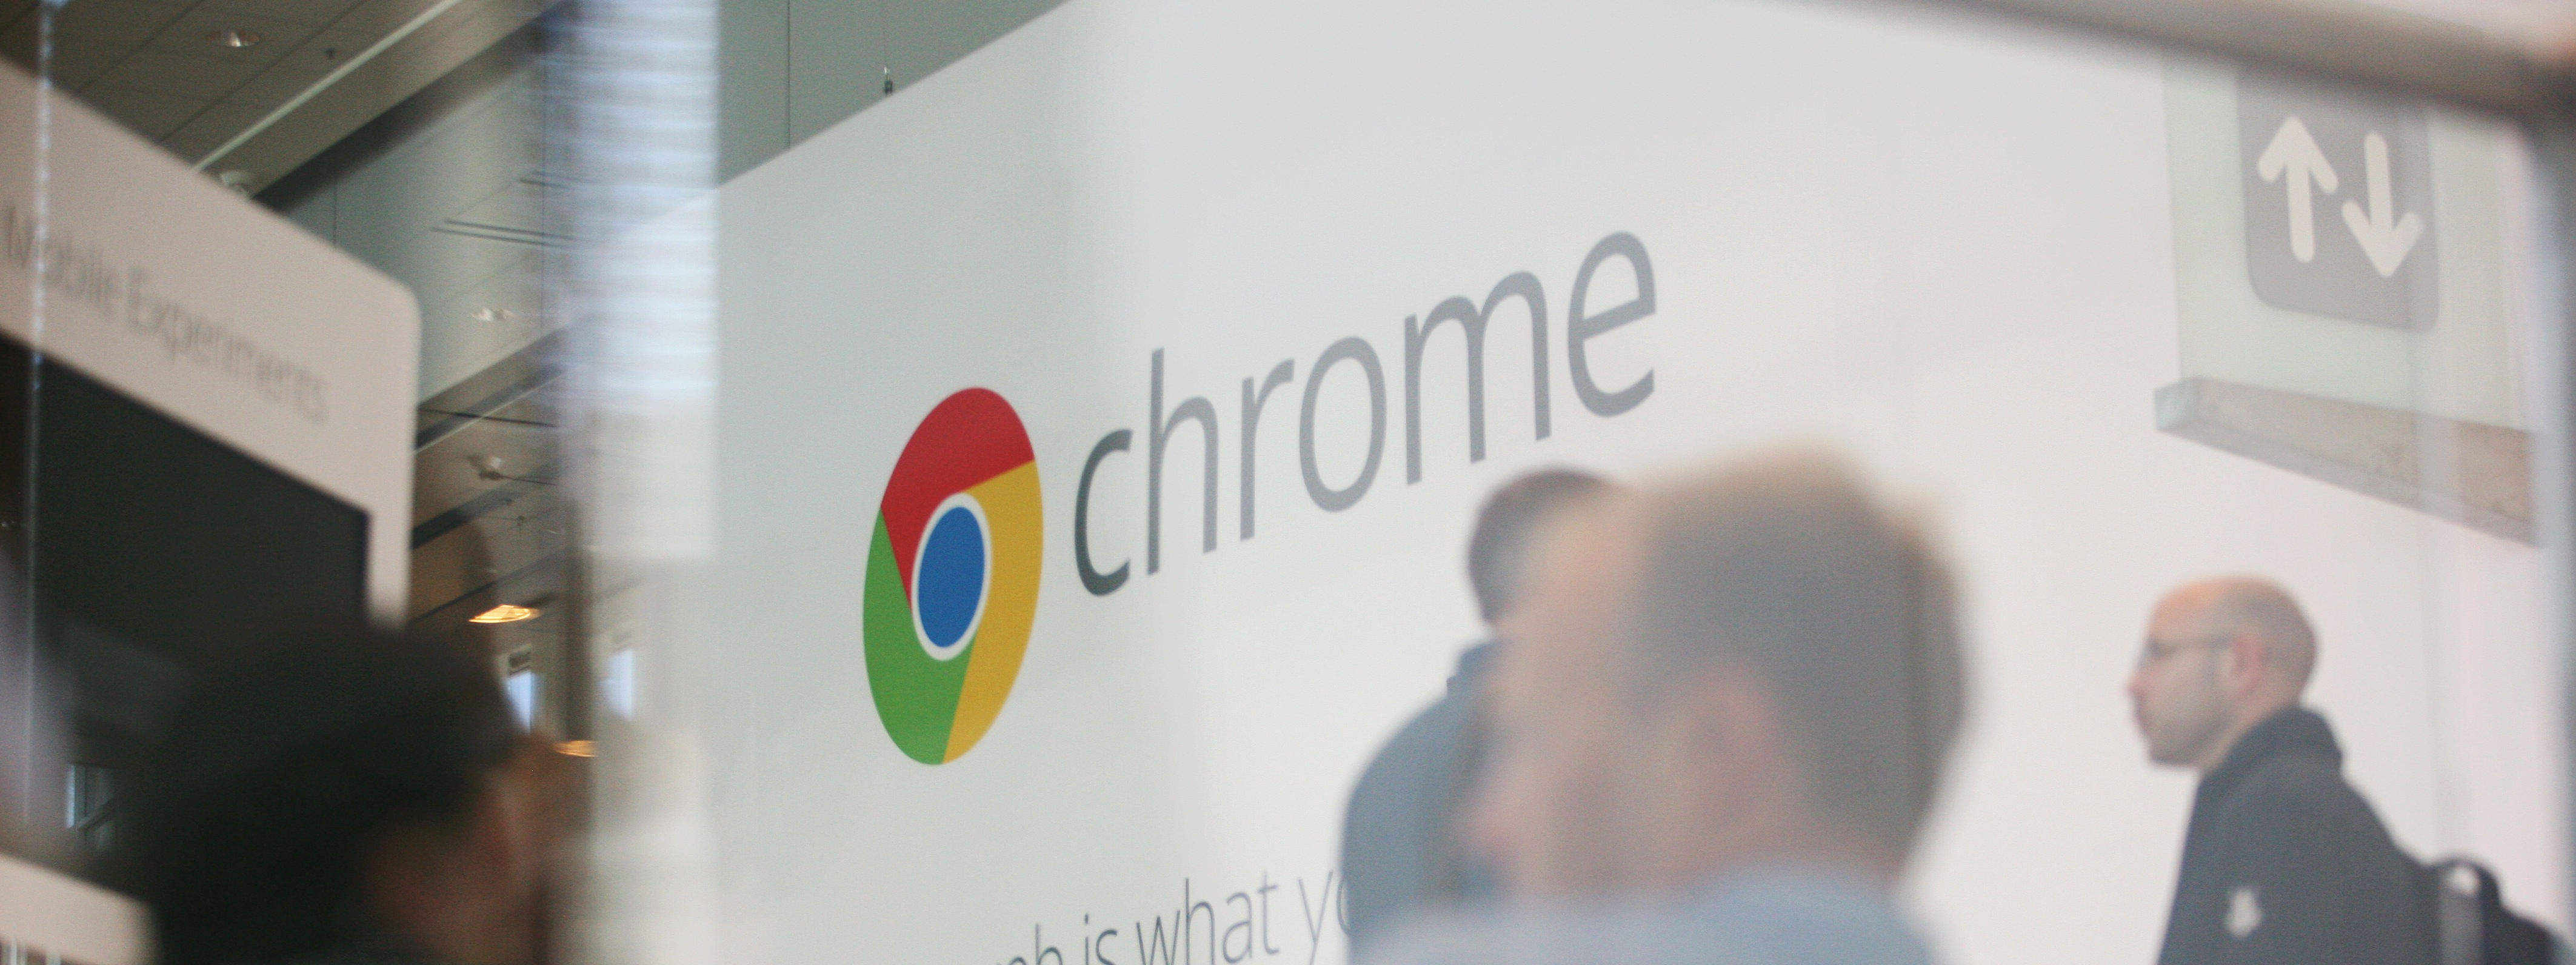 Google is bringing Chrome apps to iOS and Android, developers start building now